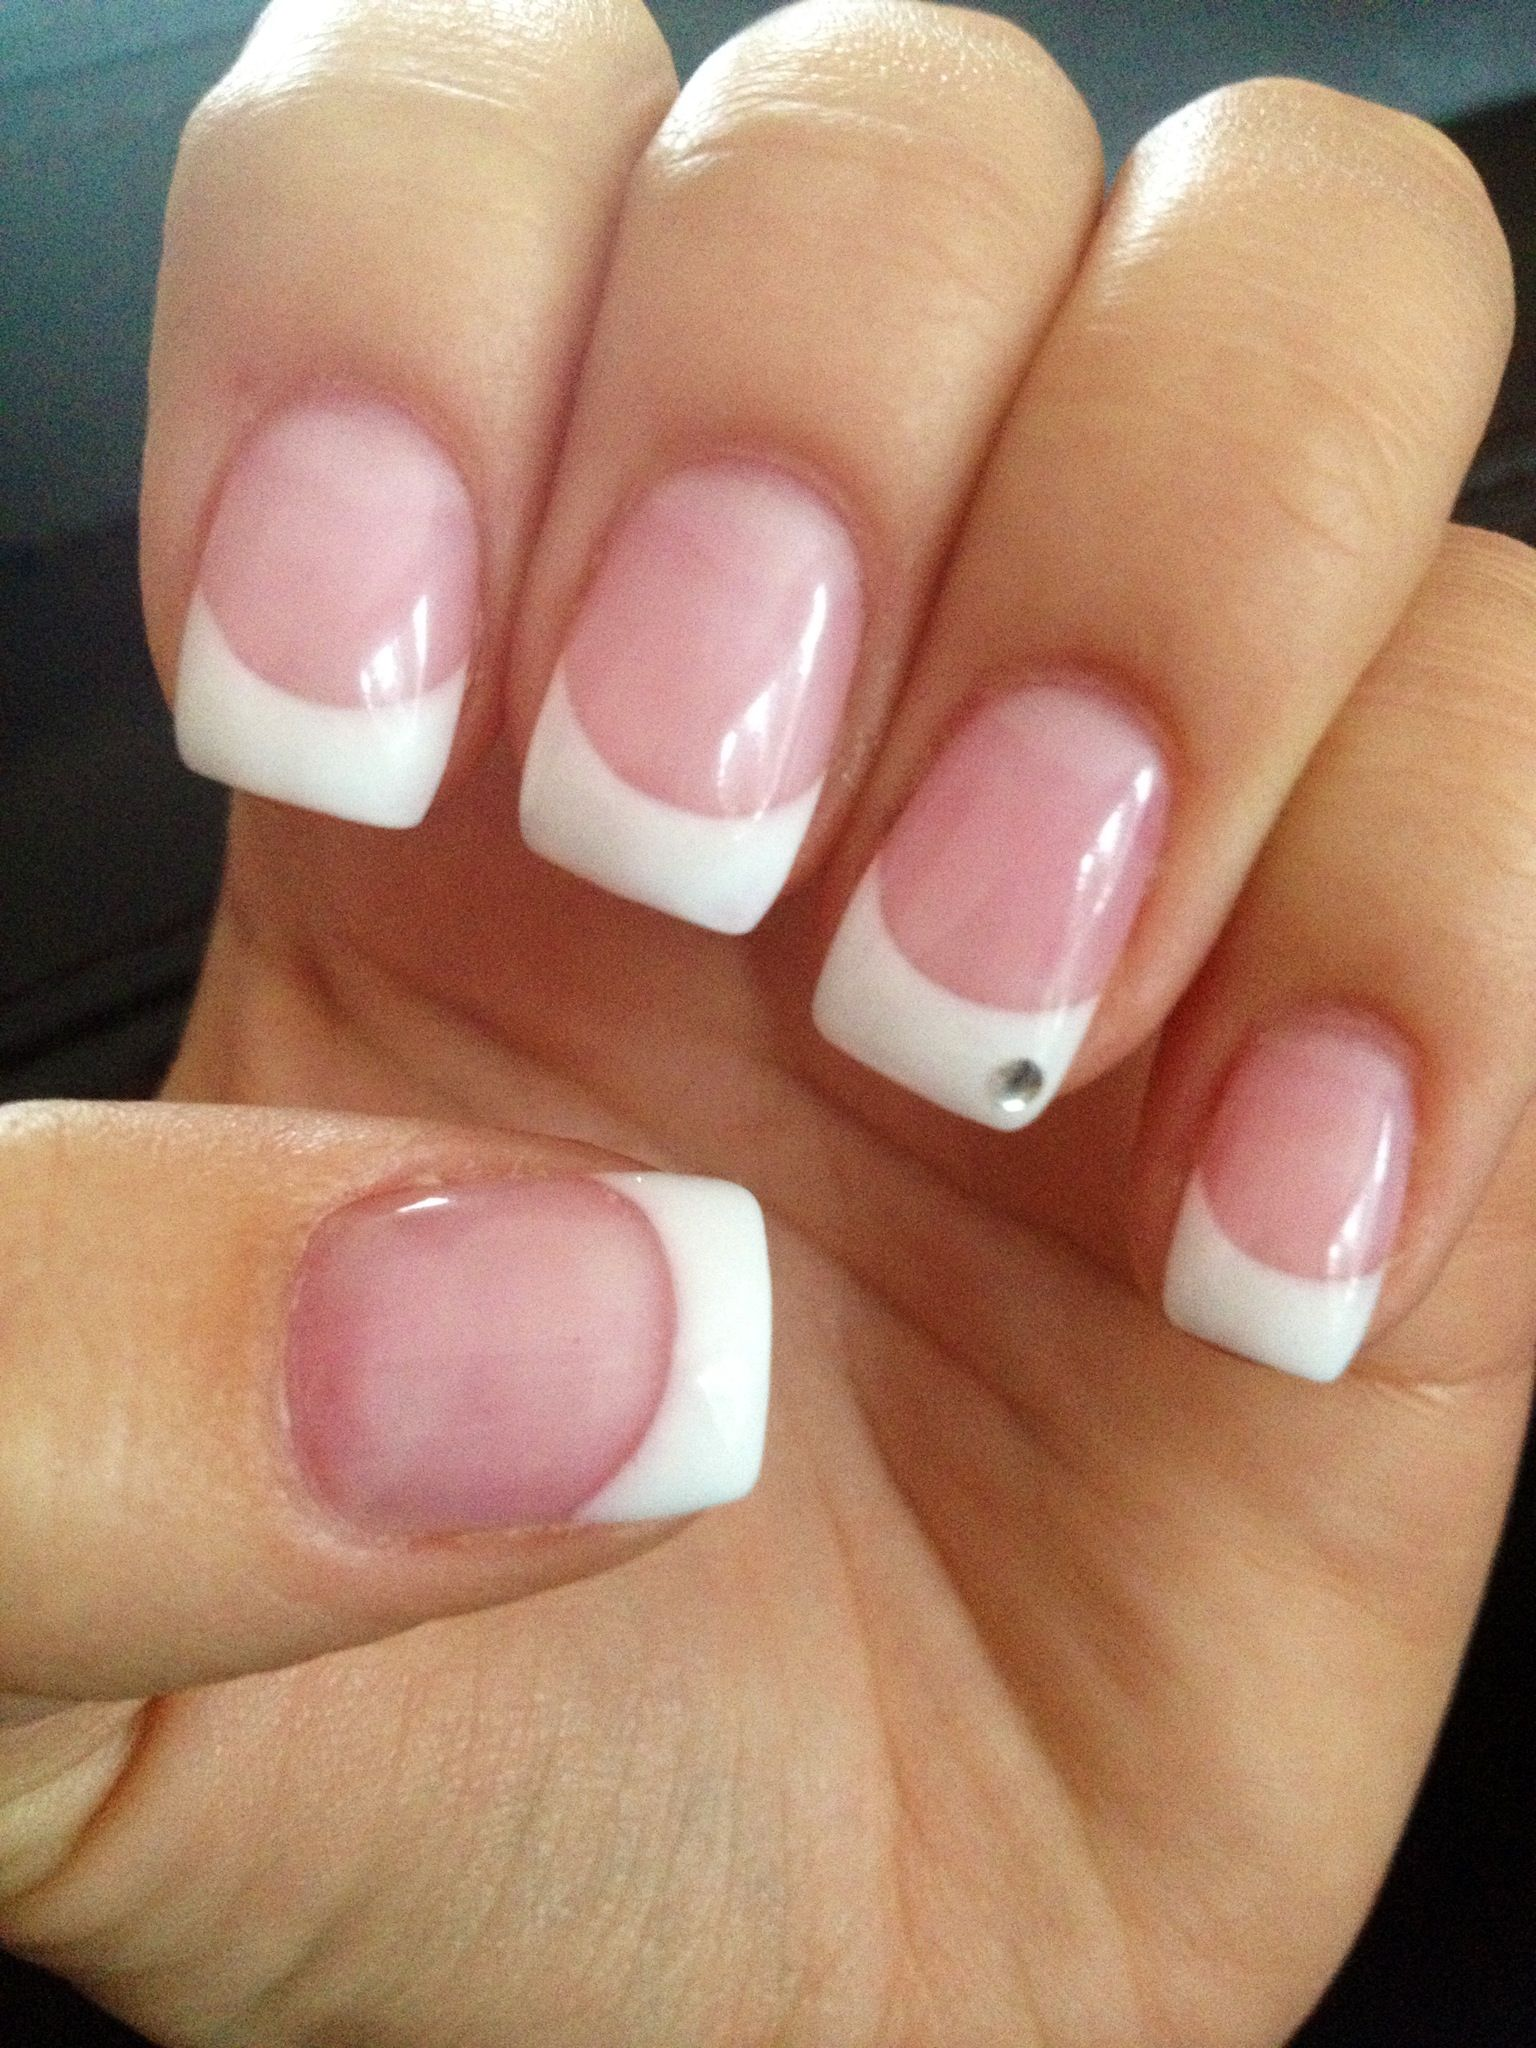 French tip gel nails with gem by Ocean Nails Spruce Grove